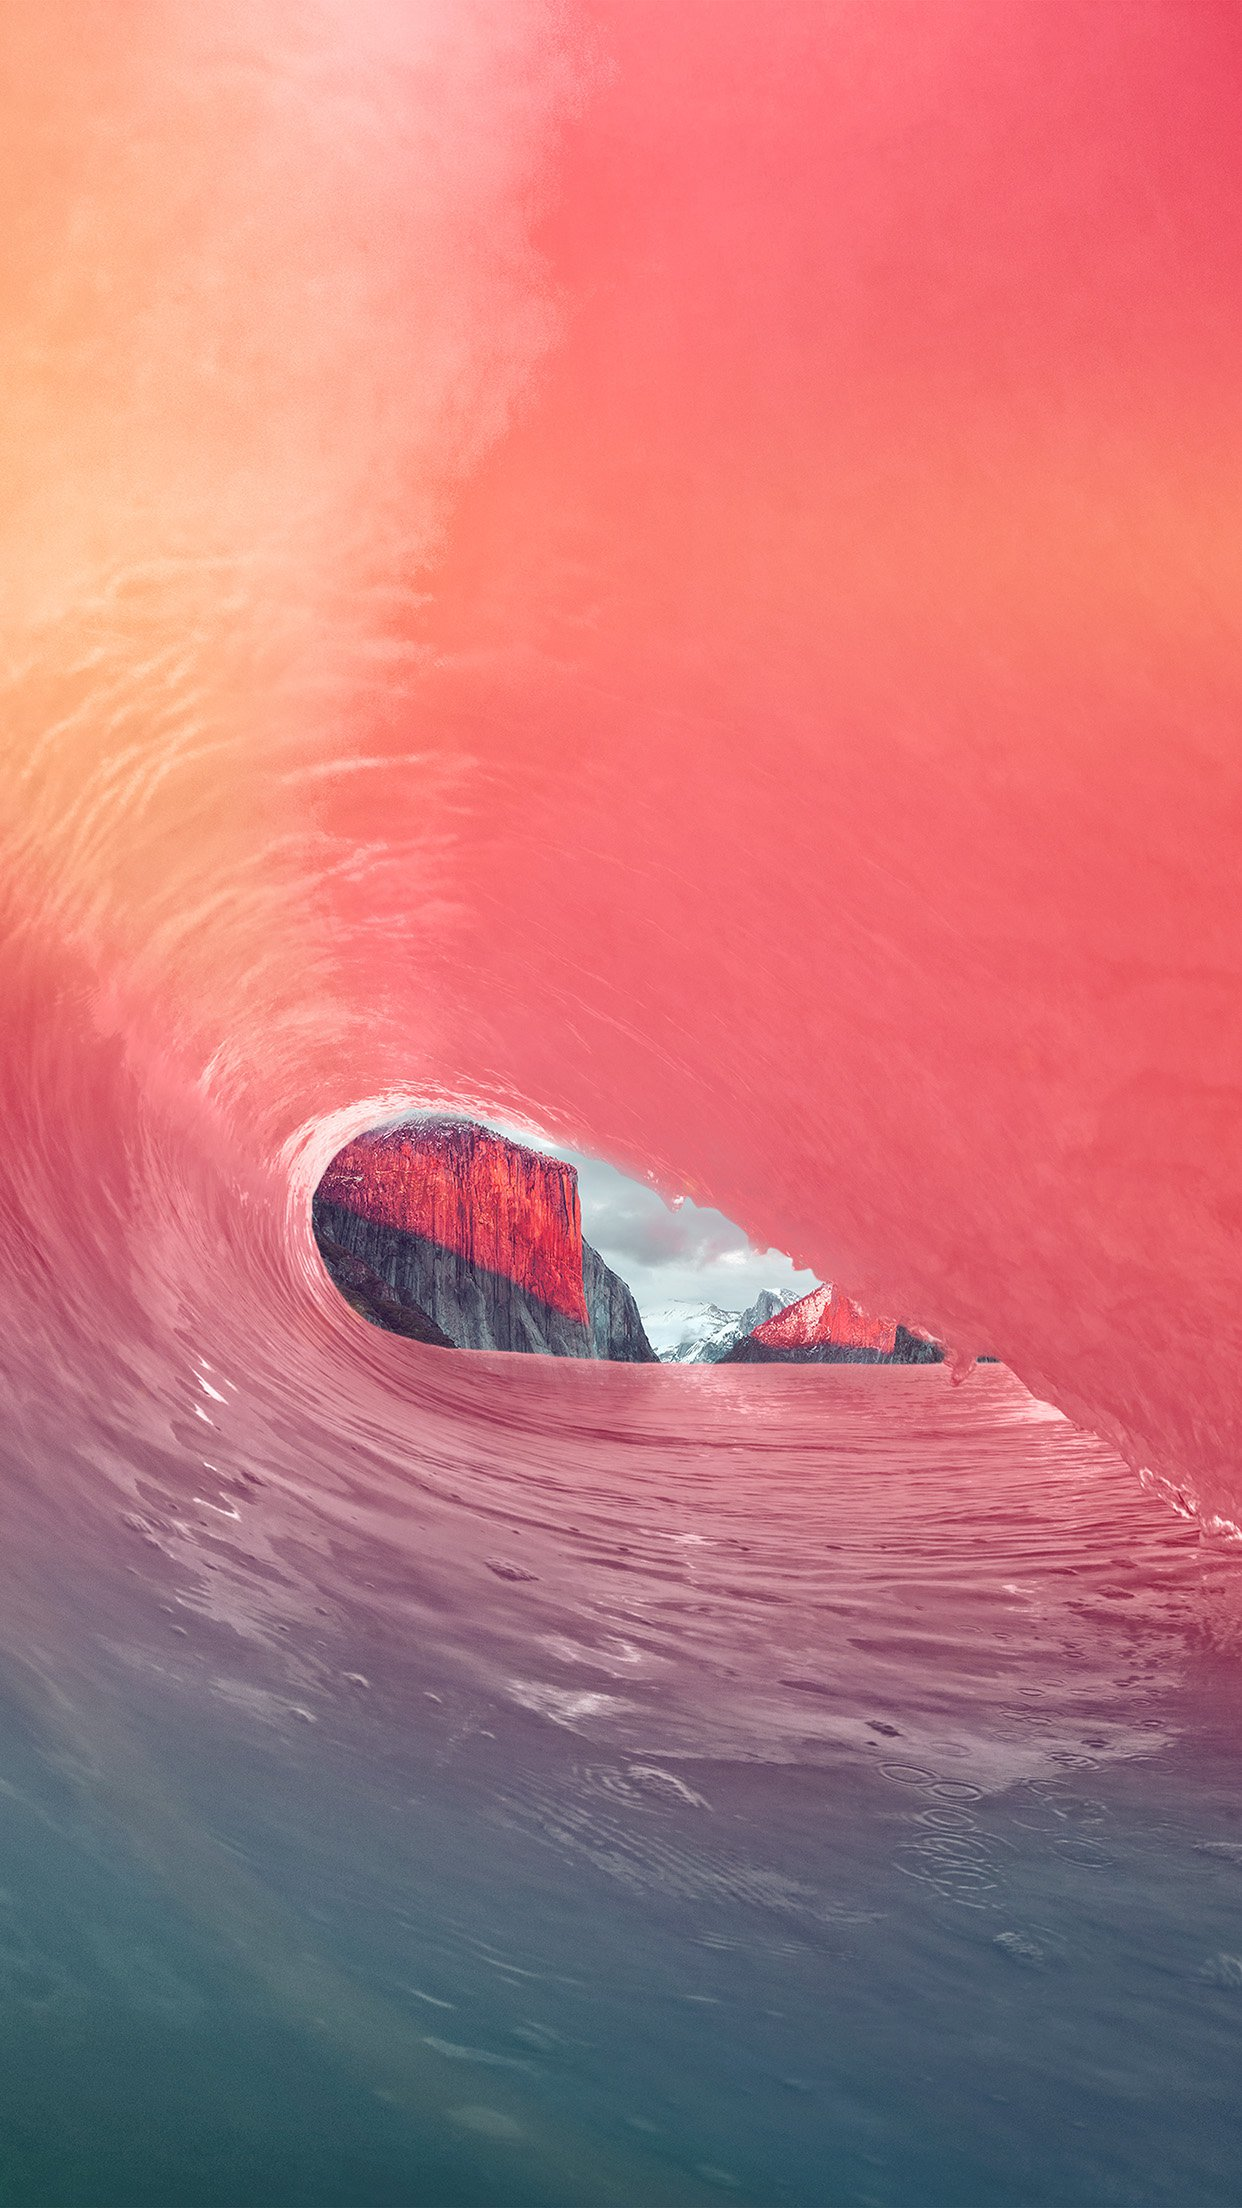 Apple Osx Yosemite Wave Rainbow Sea Pink Android wallpaper